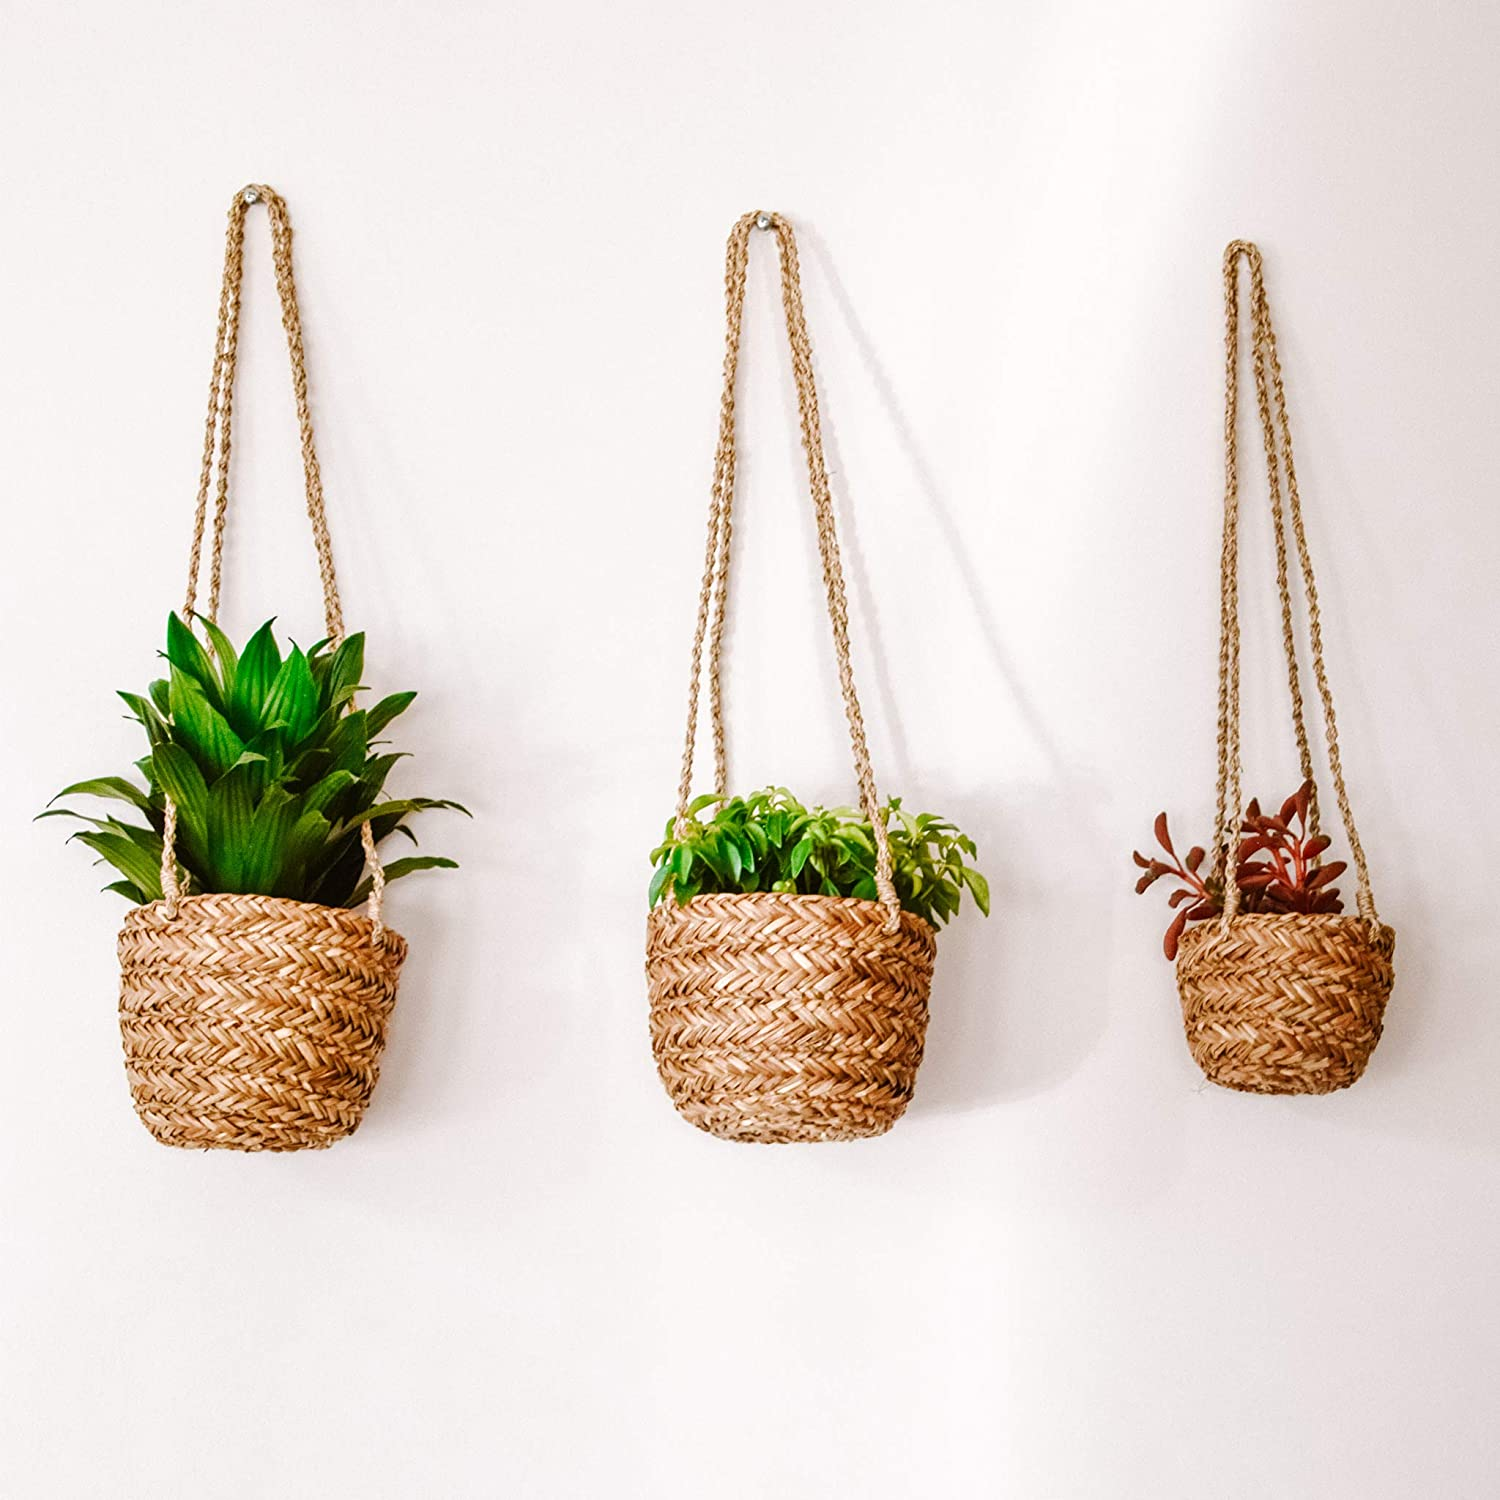 DUFMOD Hanging Seagrass Planter Basket